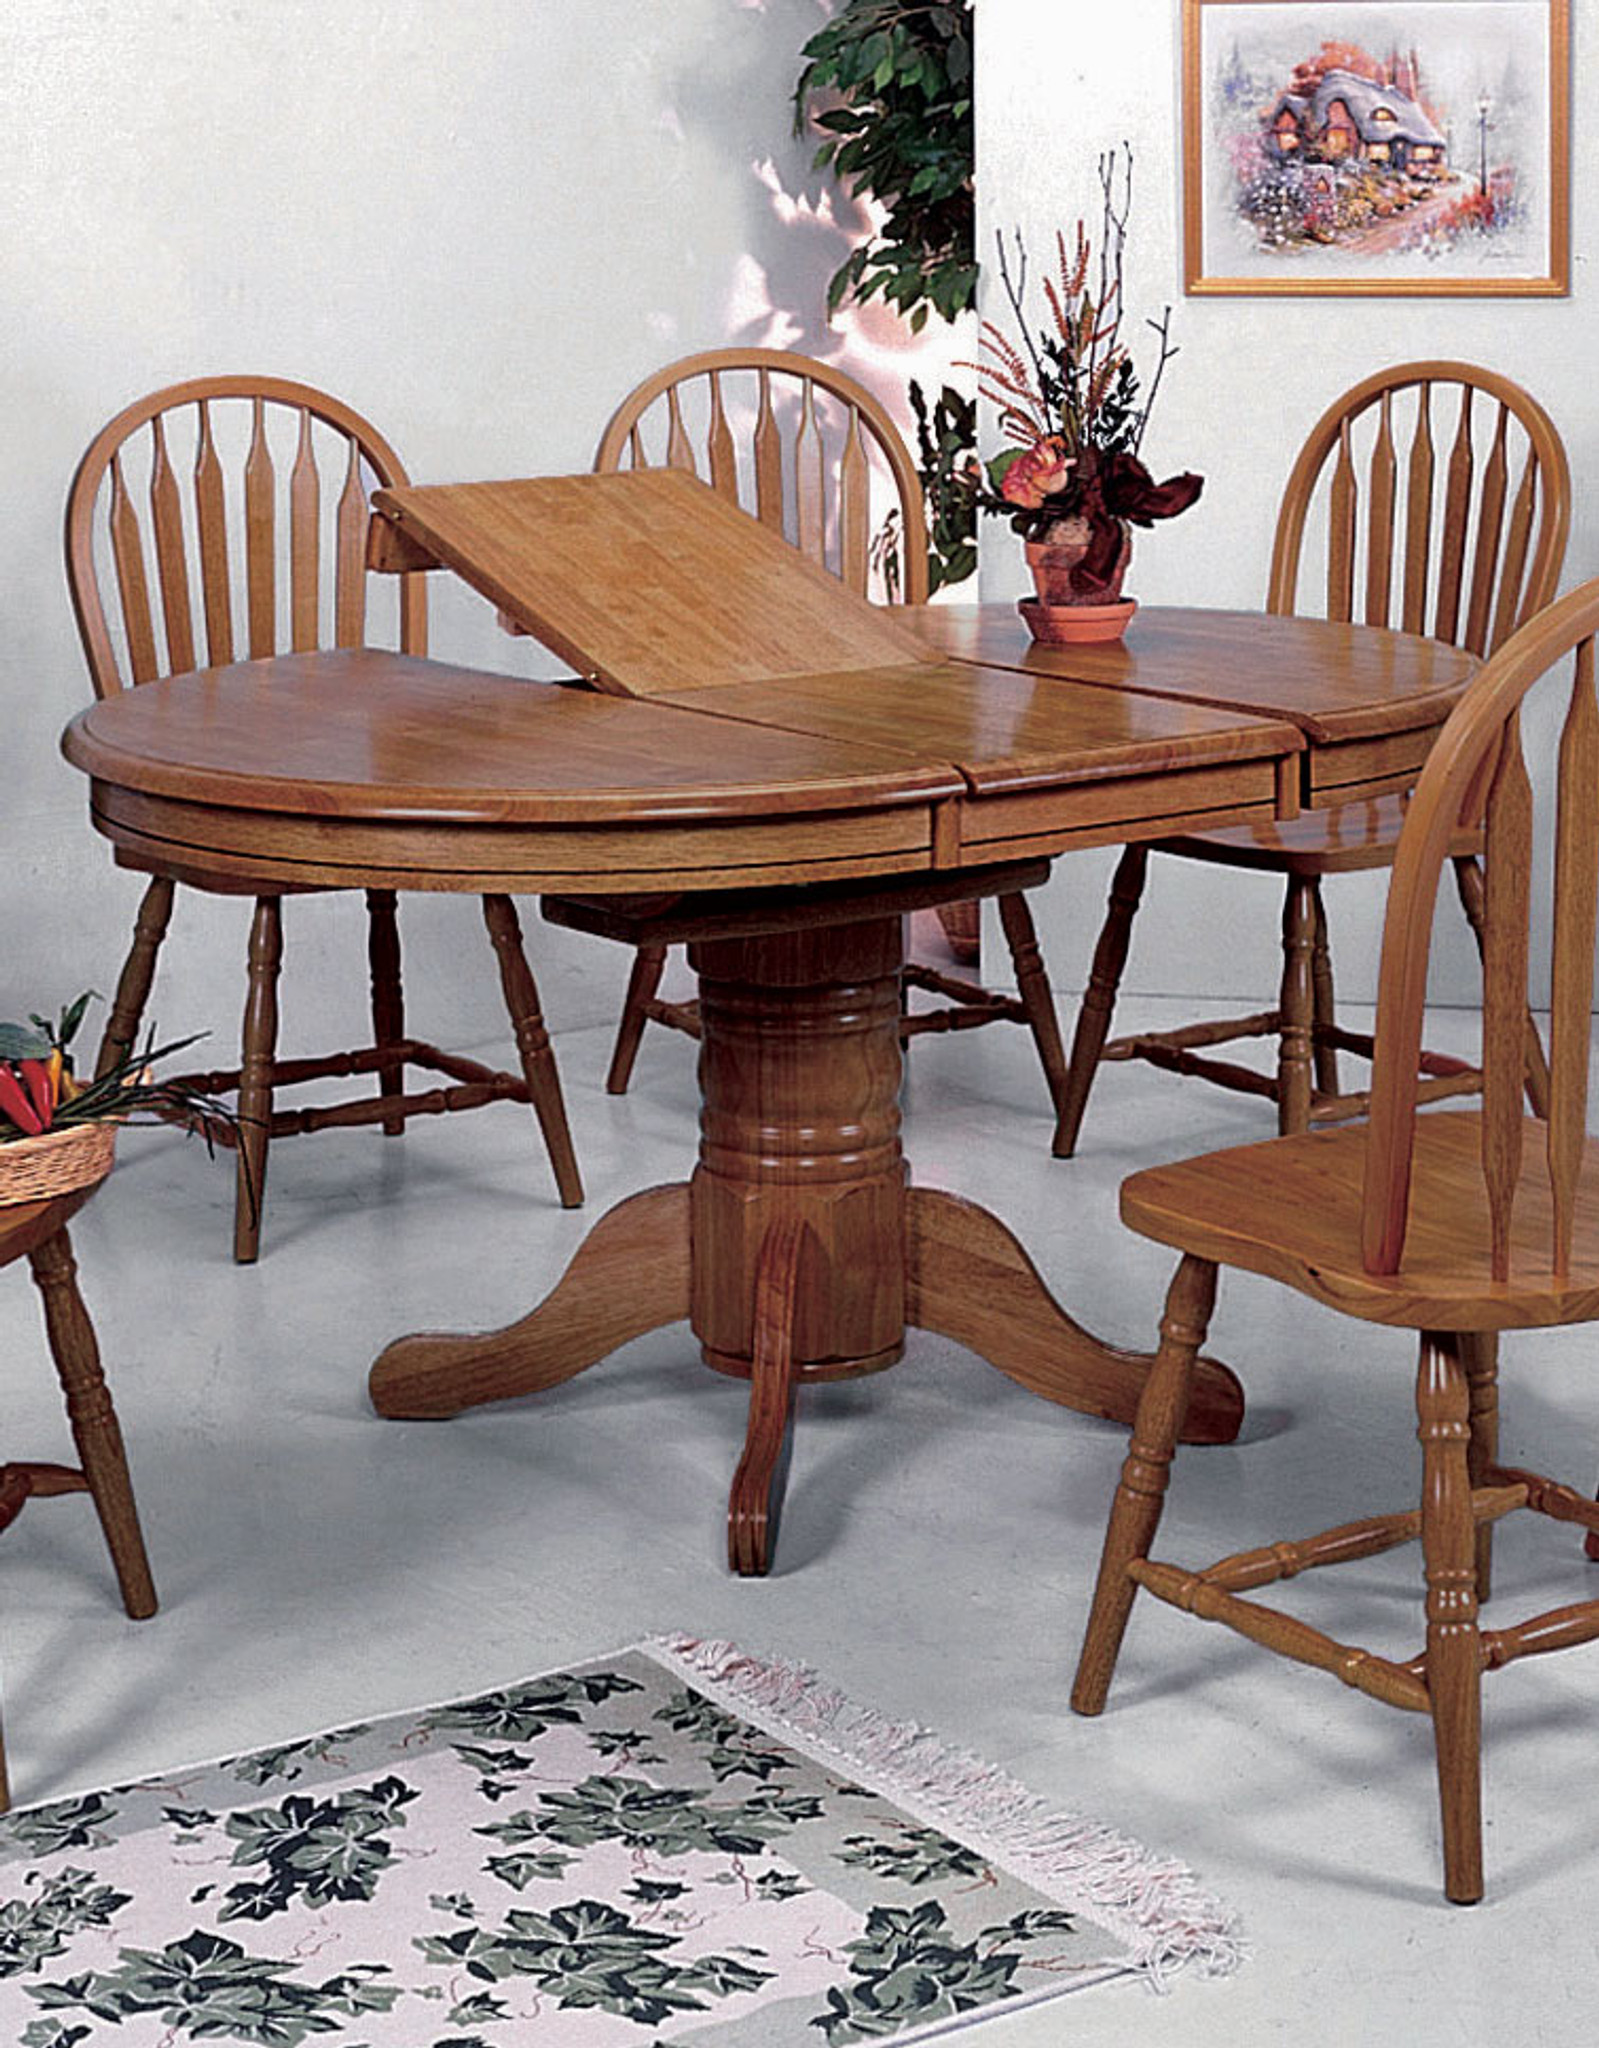 OVAL SOLID TOP BUTTERFLY LEAF TABLE